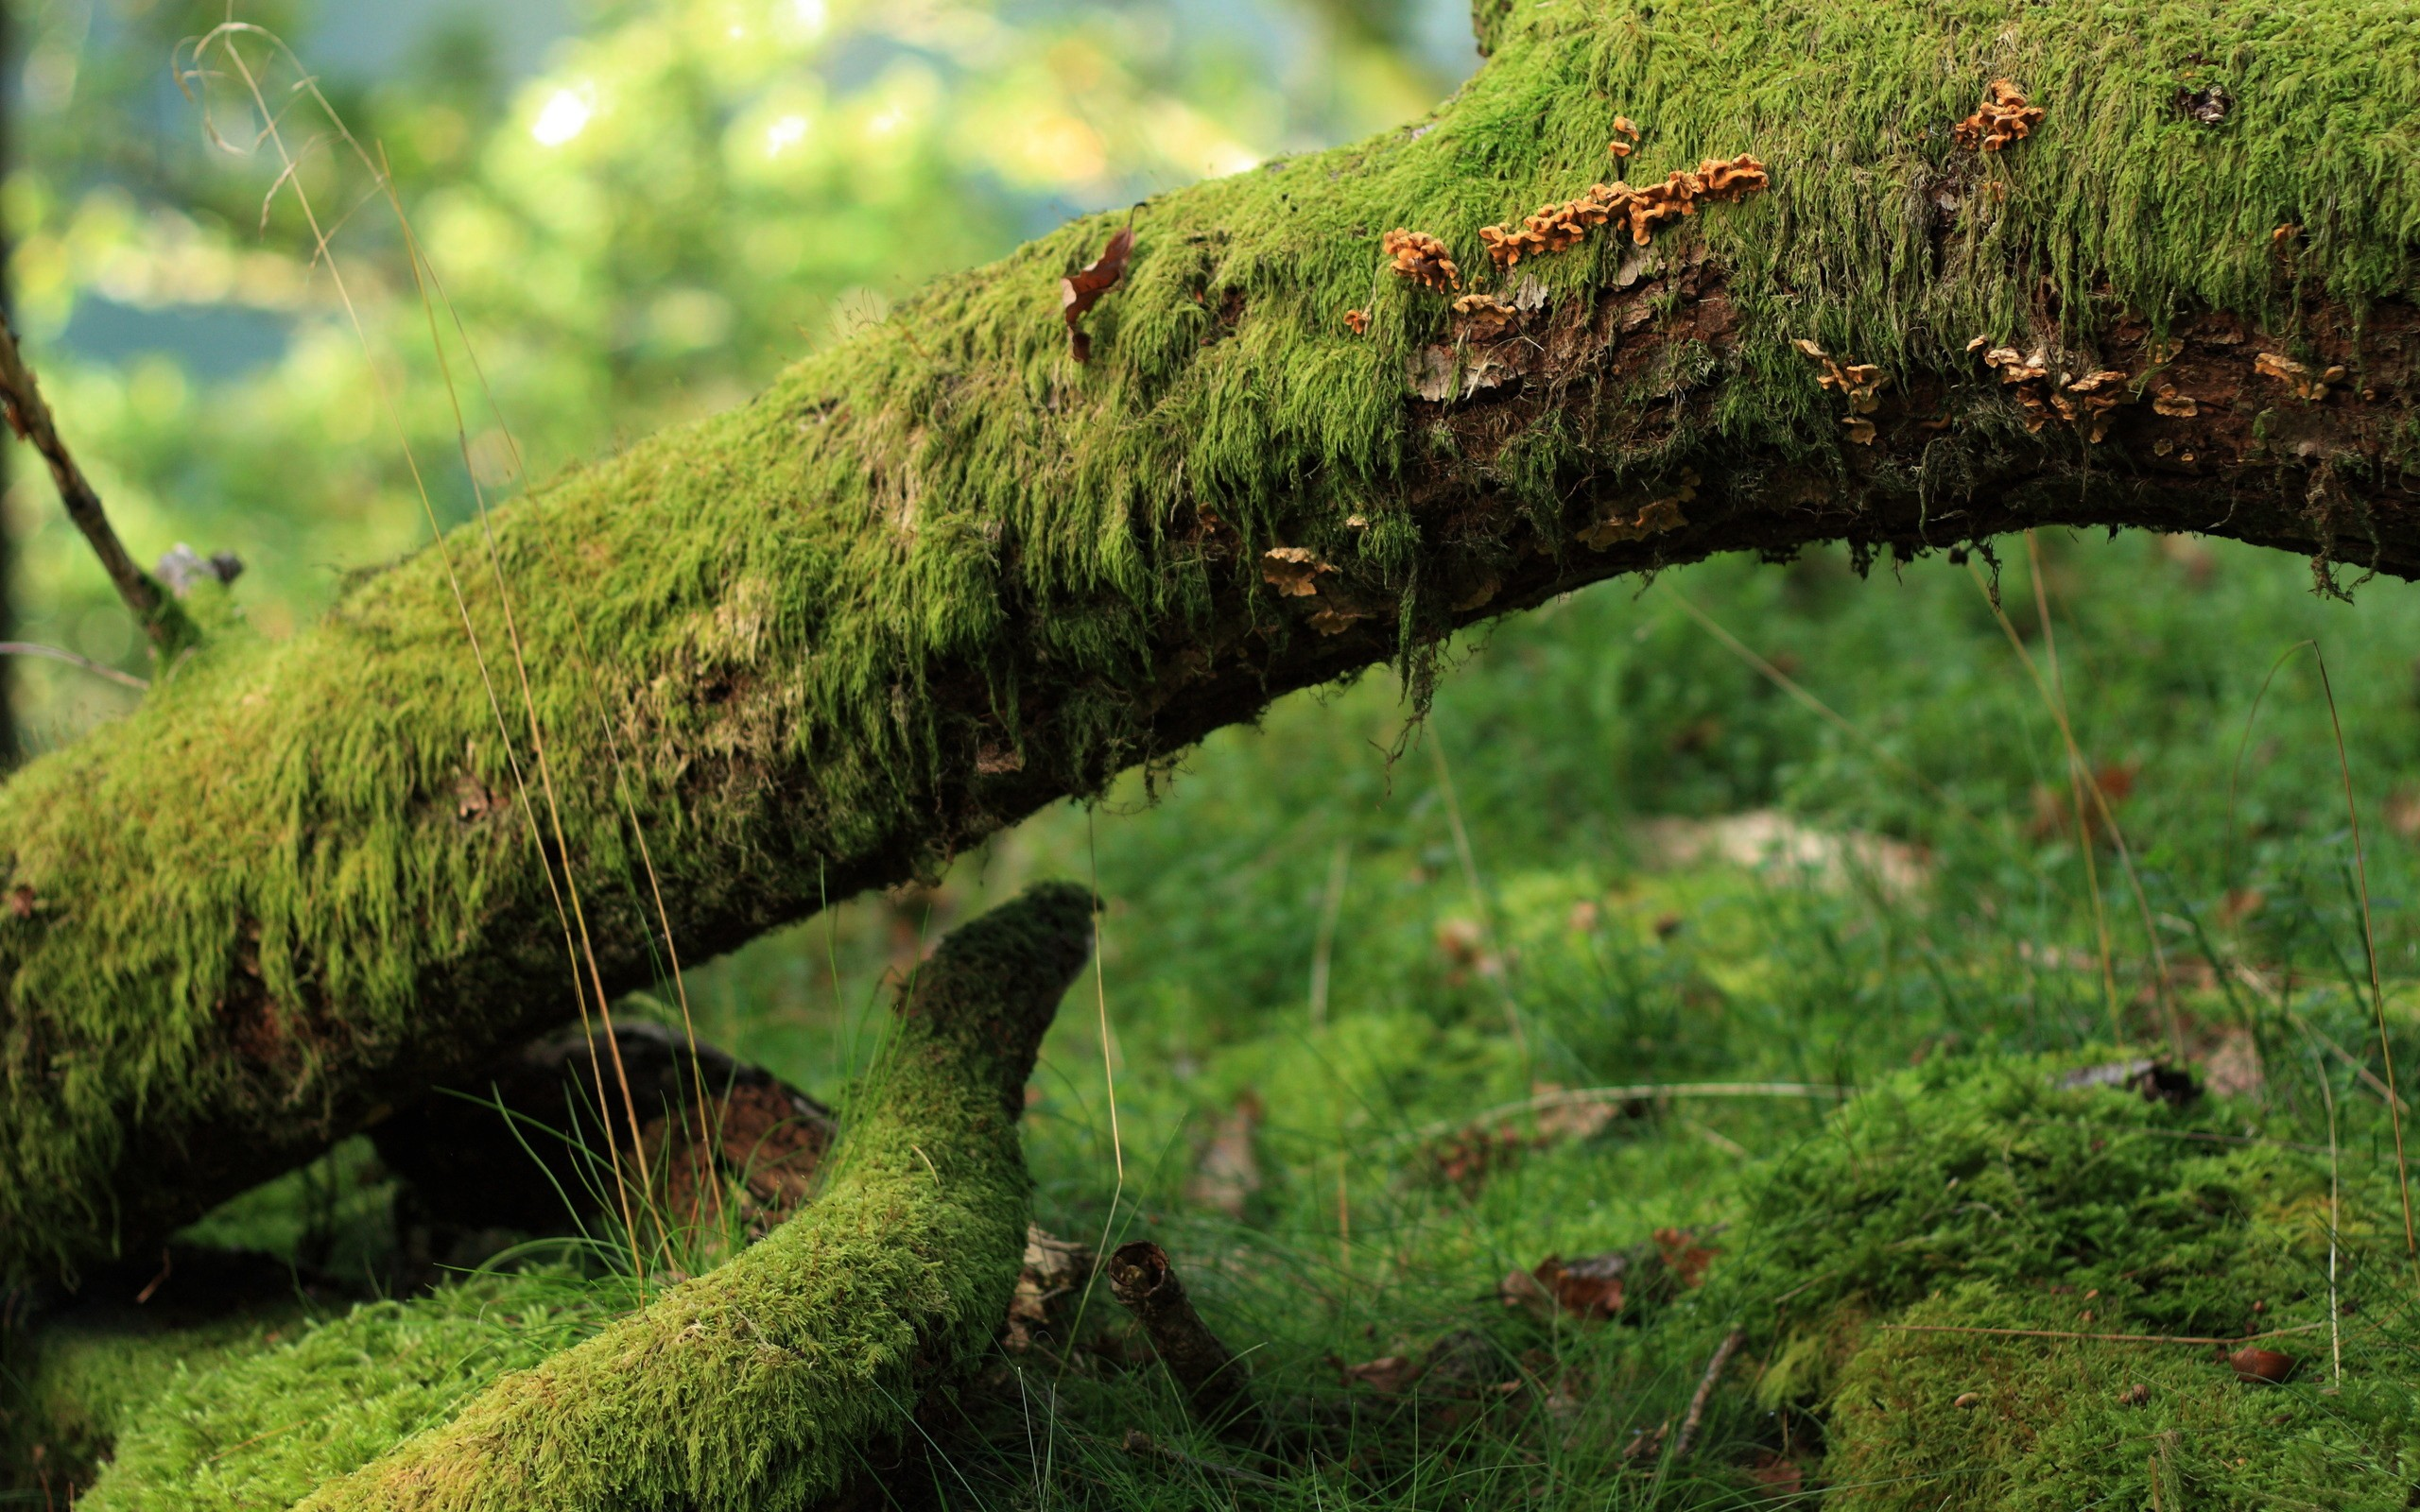 Old trees and the ground covered with moss, very beautiful photo wallpaper.